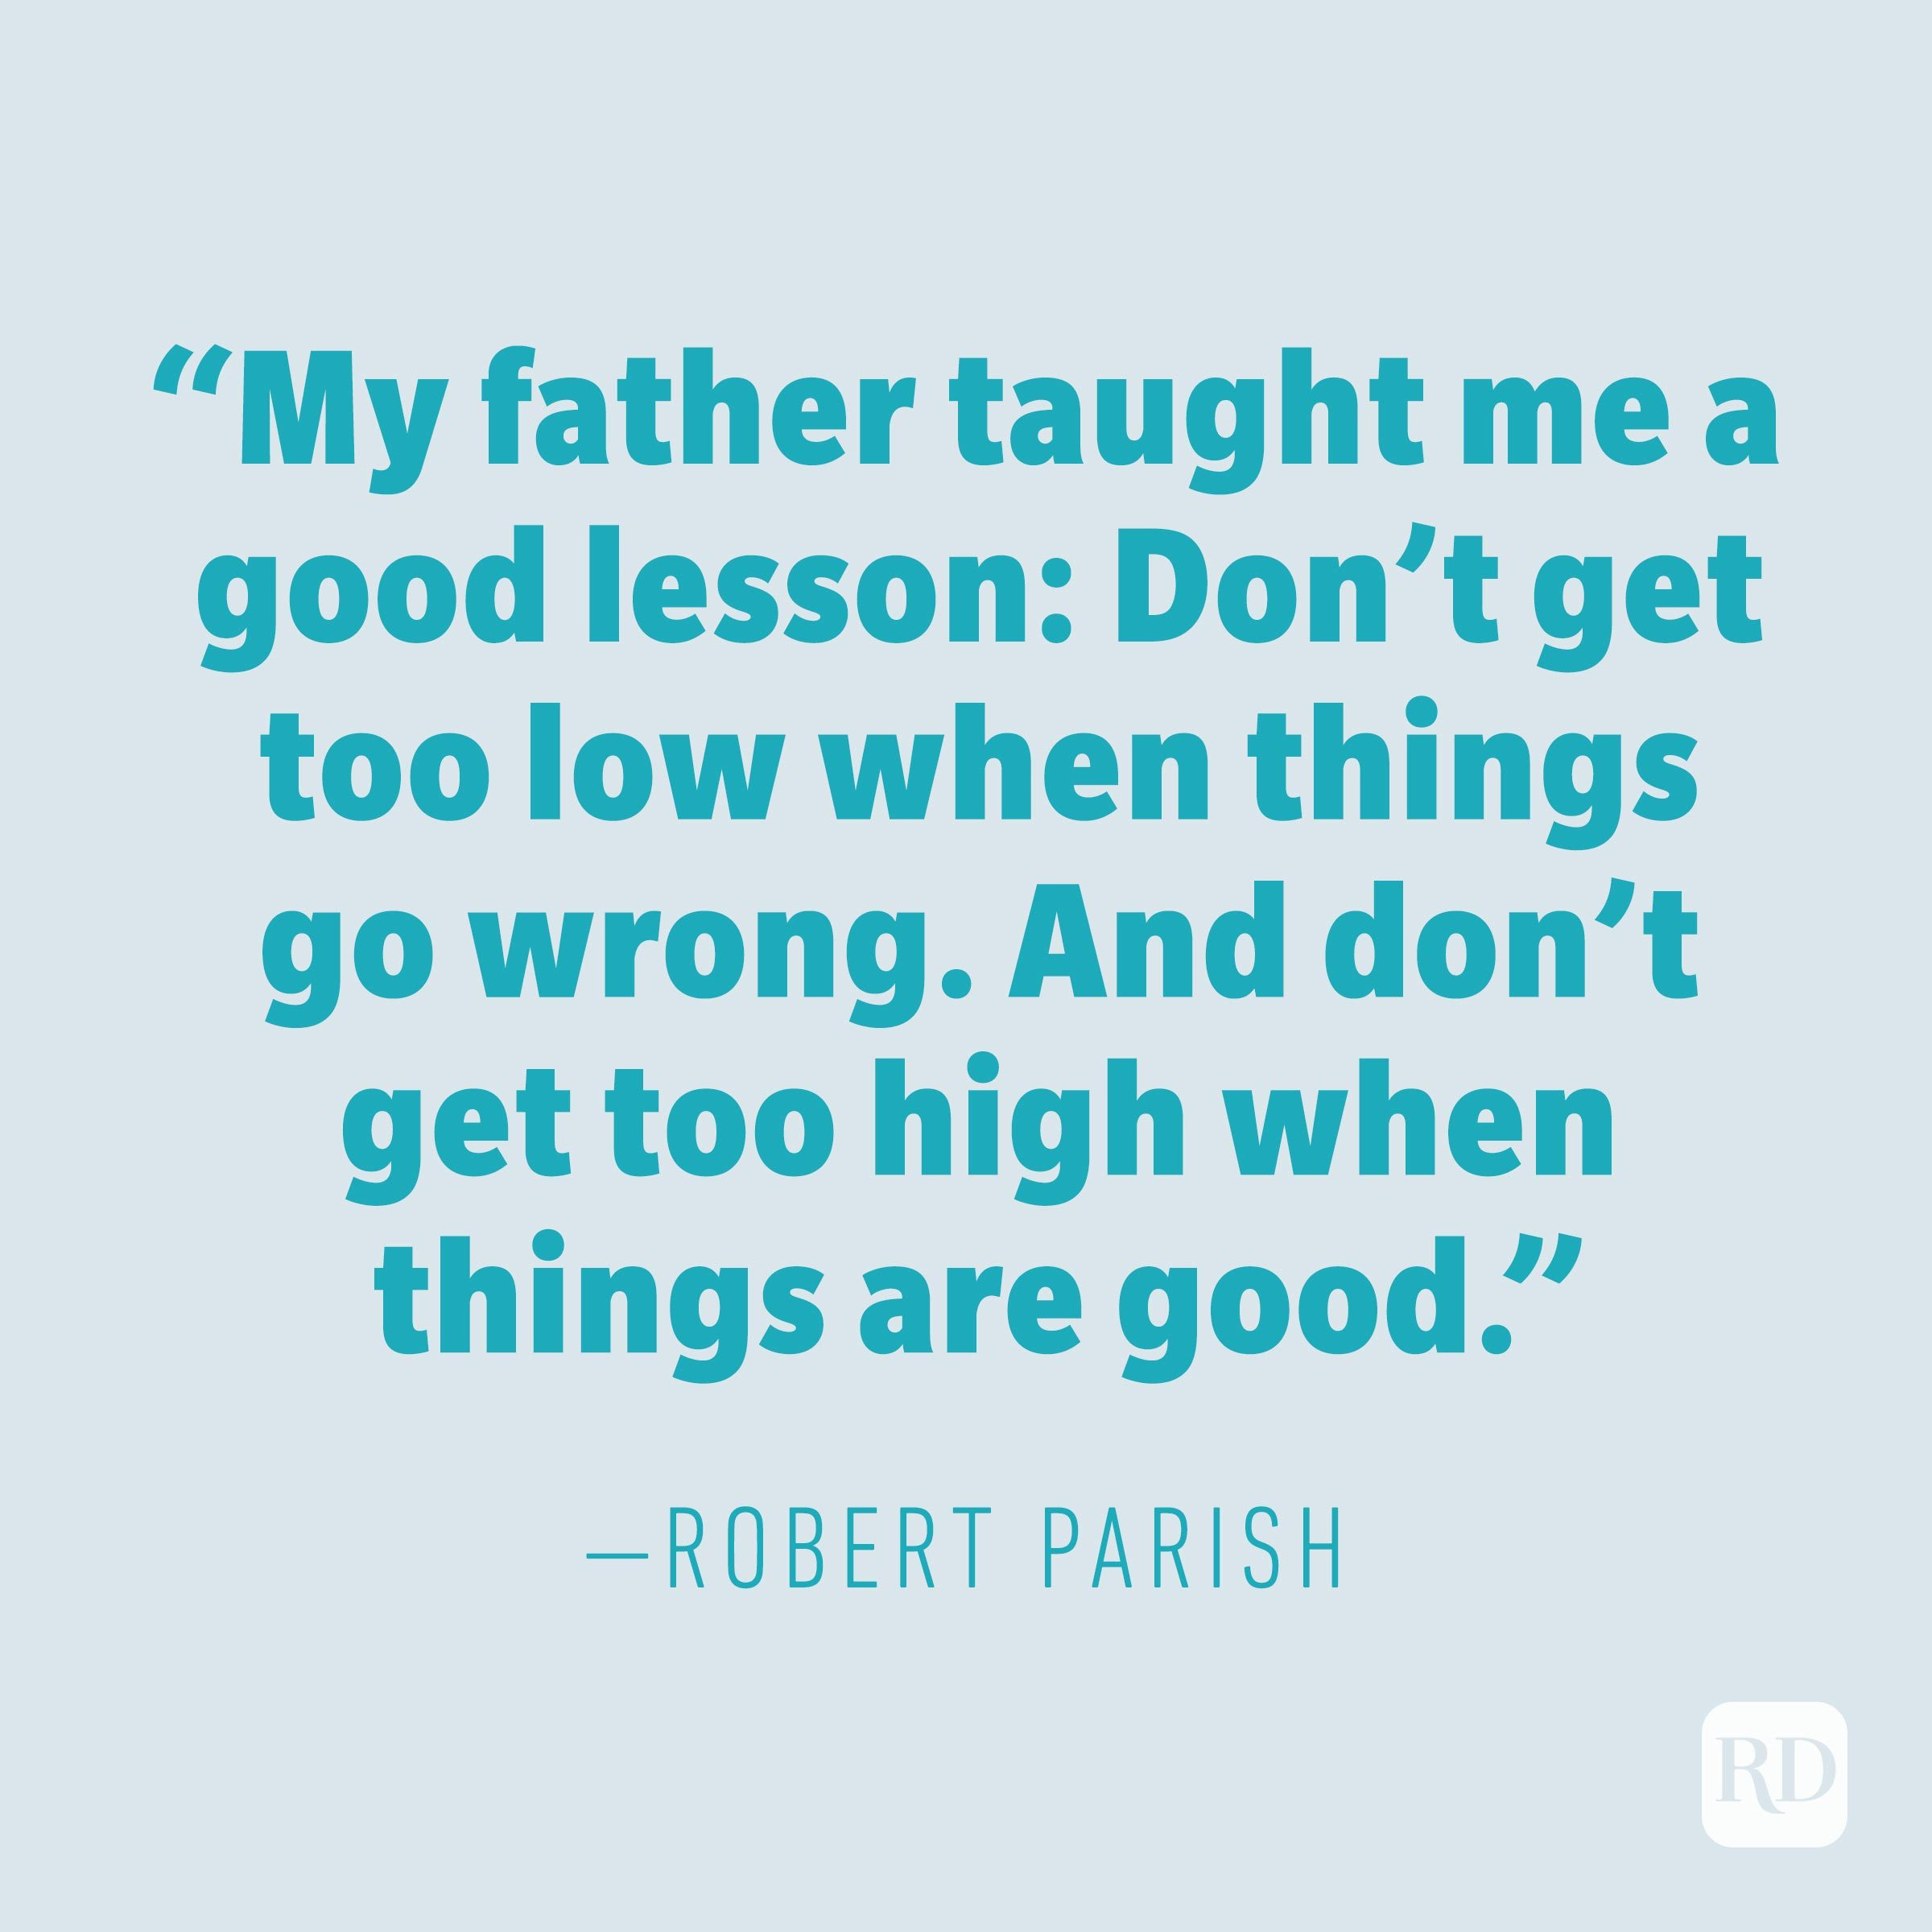 """My father taught me a good lesson: Don't get too low when things go wrong. And don't get too high when things are good."" —ROBERT PARISH"